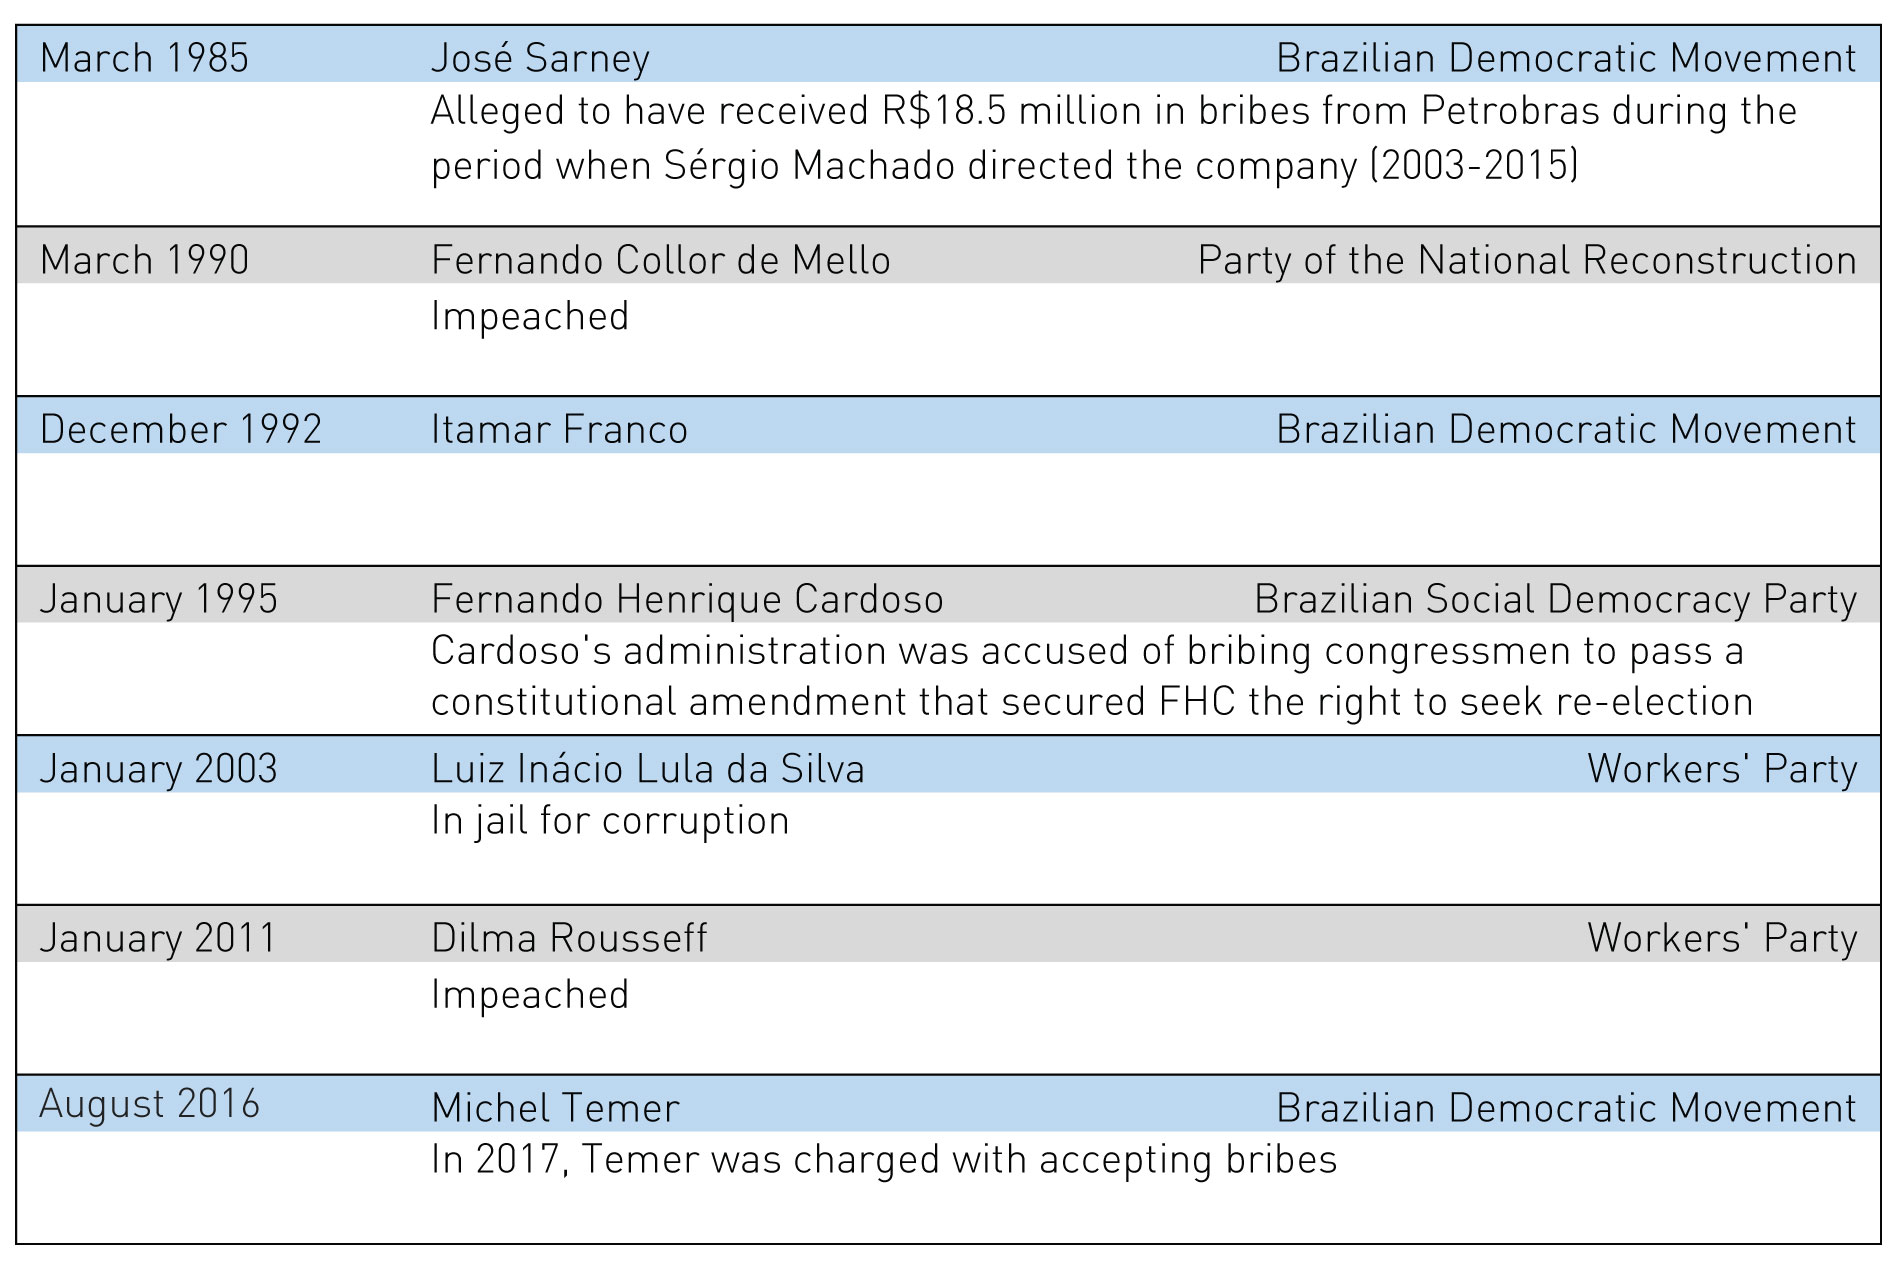 Table 1: Presidents in Brazil during the New Republic 1985-present